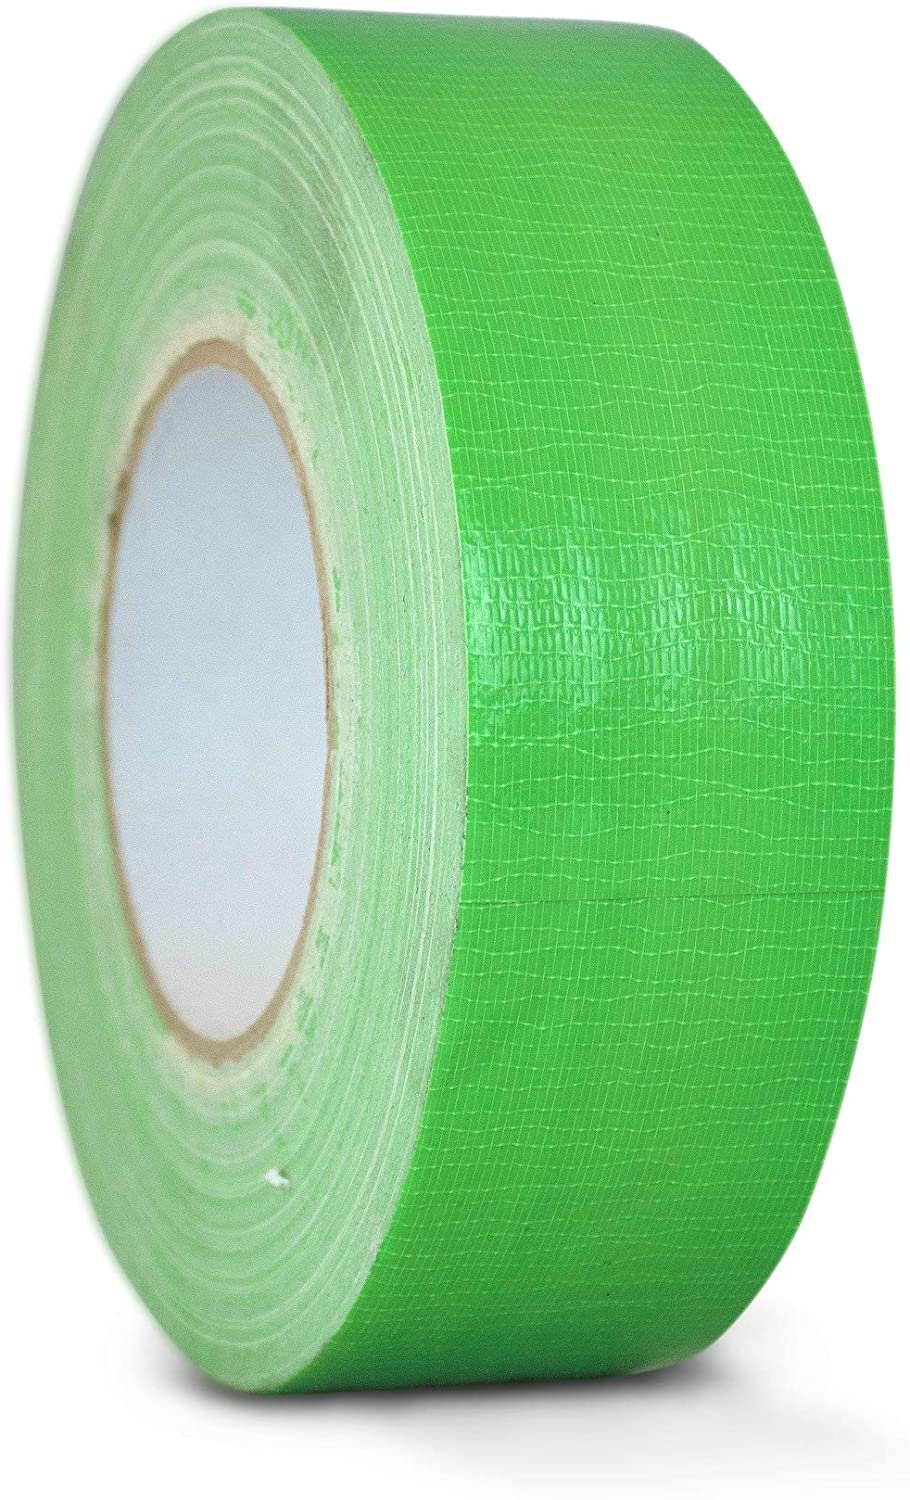 WOD DTC10 Advanced Strength Industrial Grade Light Green Duct Tape, 2.5 inch x 60 yds. Waterproof, UV Resistant For Crafts & Home Improvement